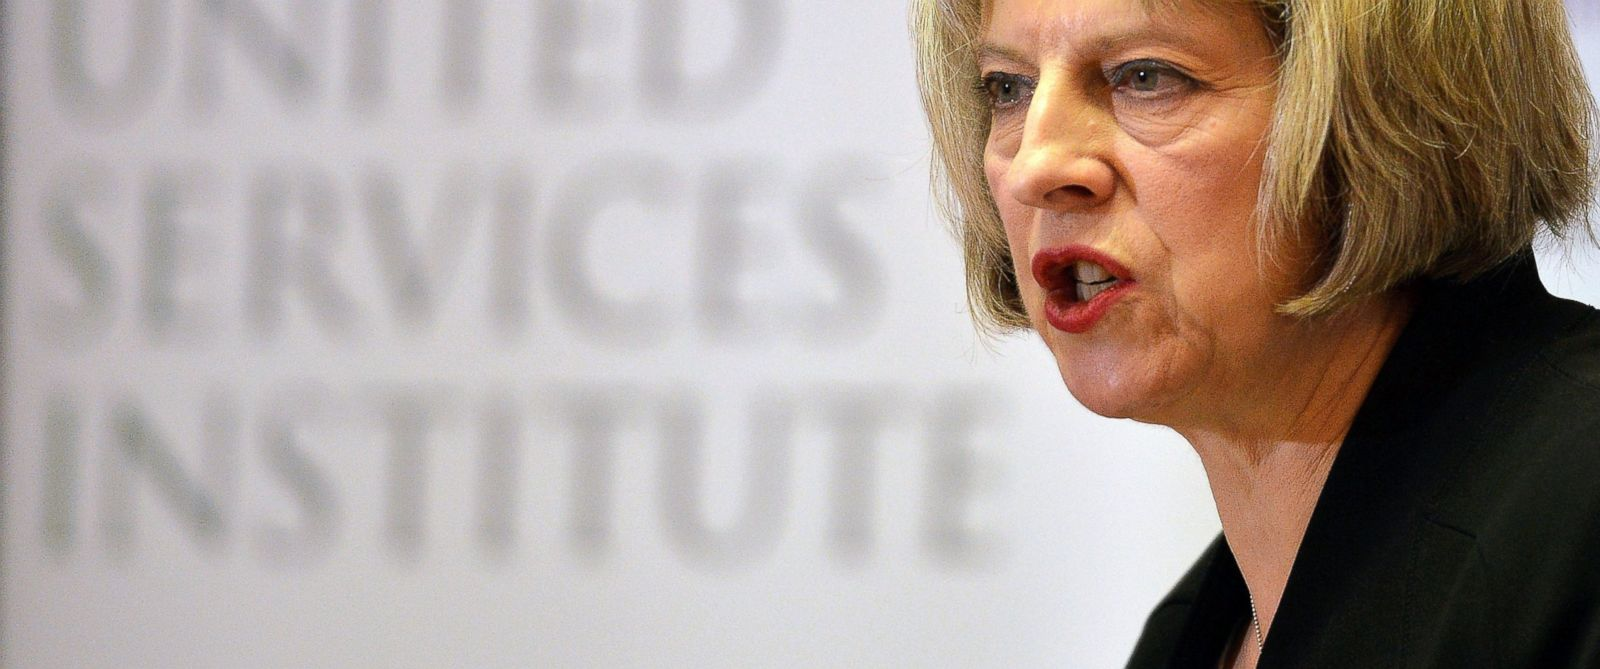 PHOTO: Britains Home Secretary Teresa May speaks during the counter-terrorism awareness week conference at the Royal United Services Institute in London, Nov. 24, 2014.